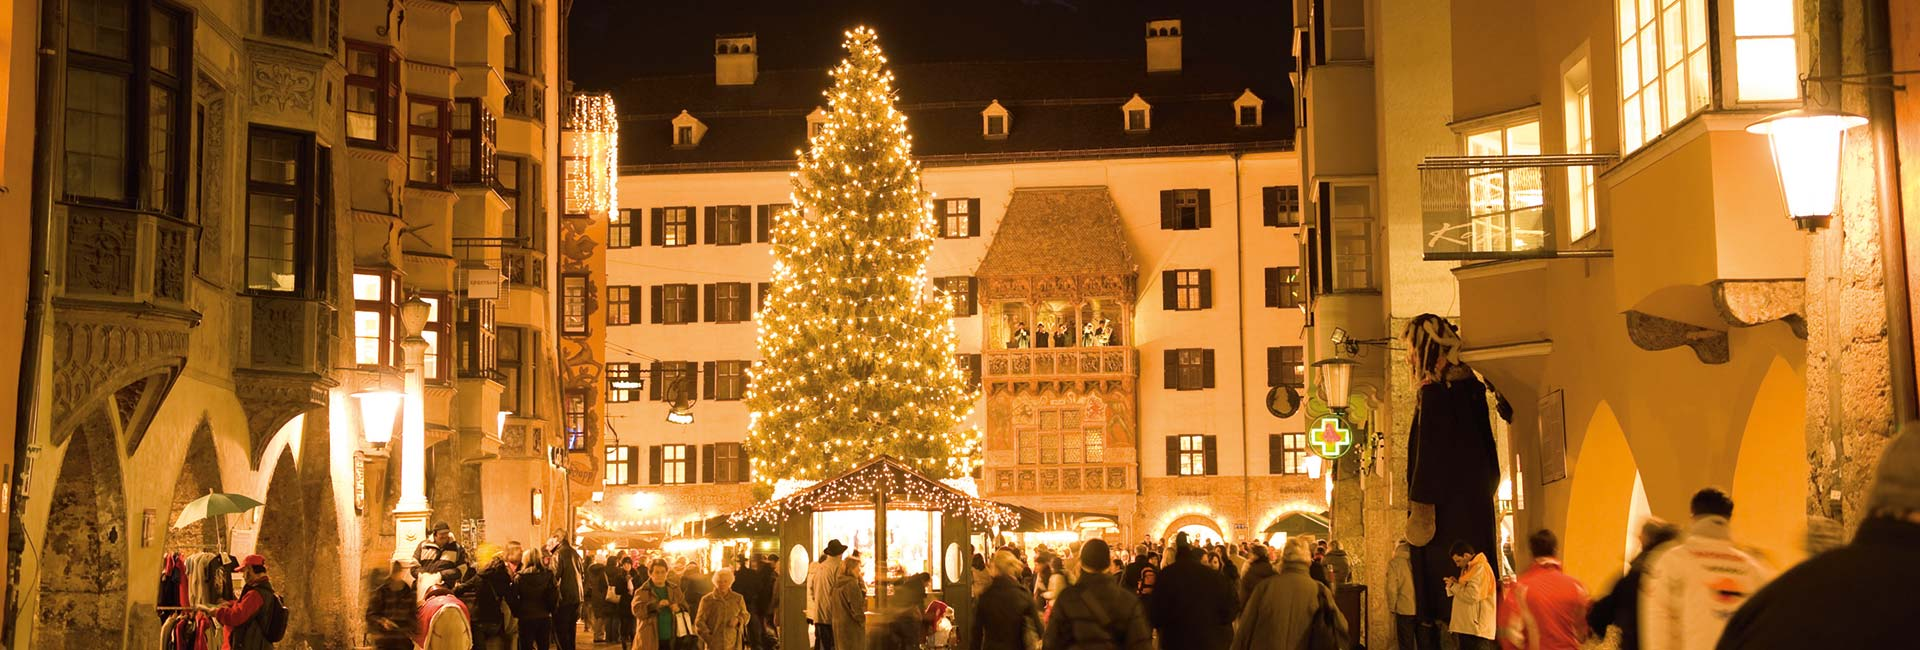 Christmas Market in Innsbruck